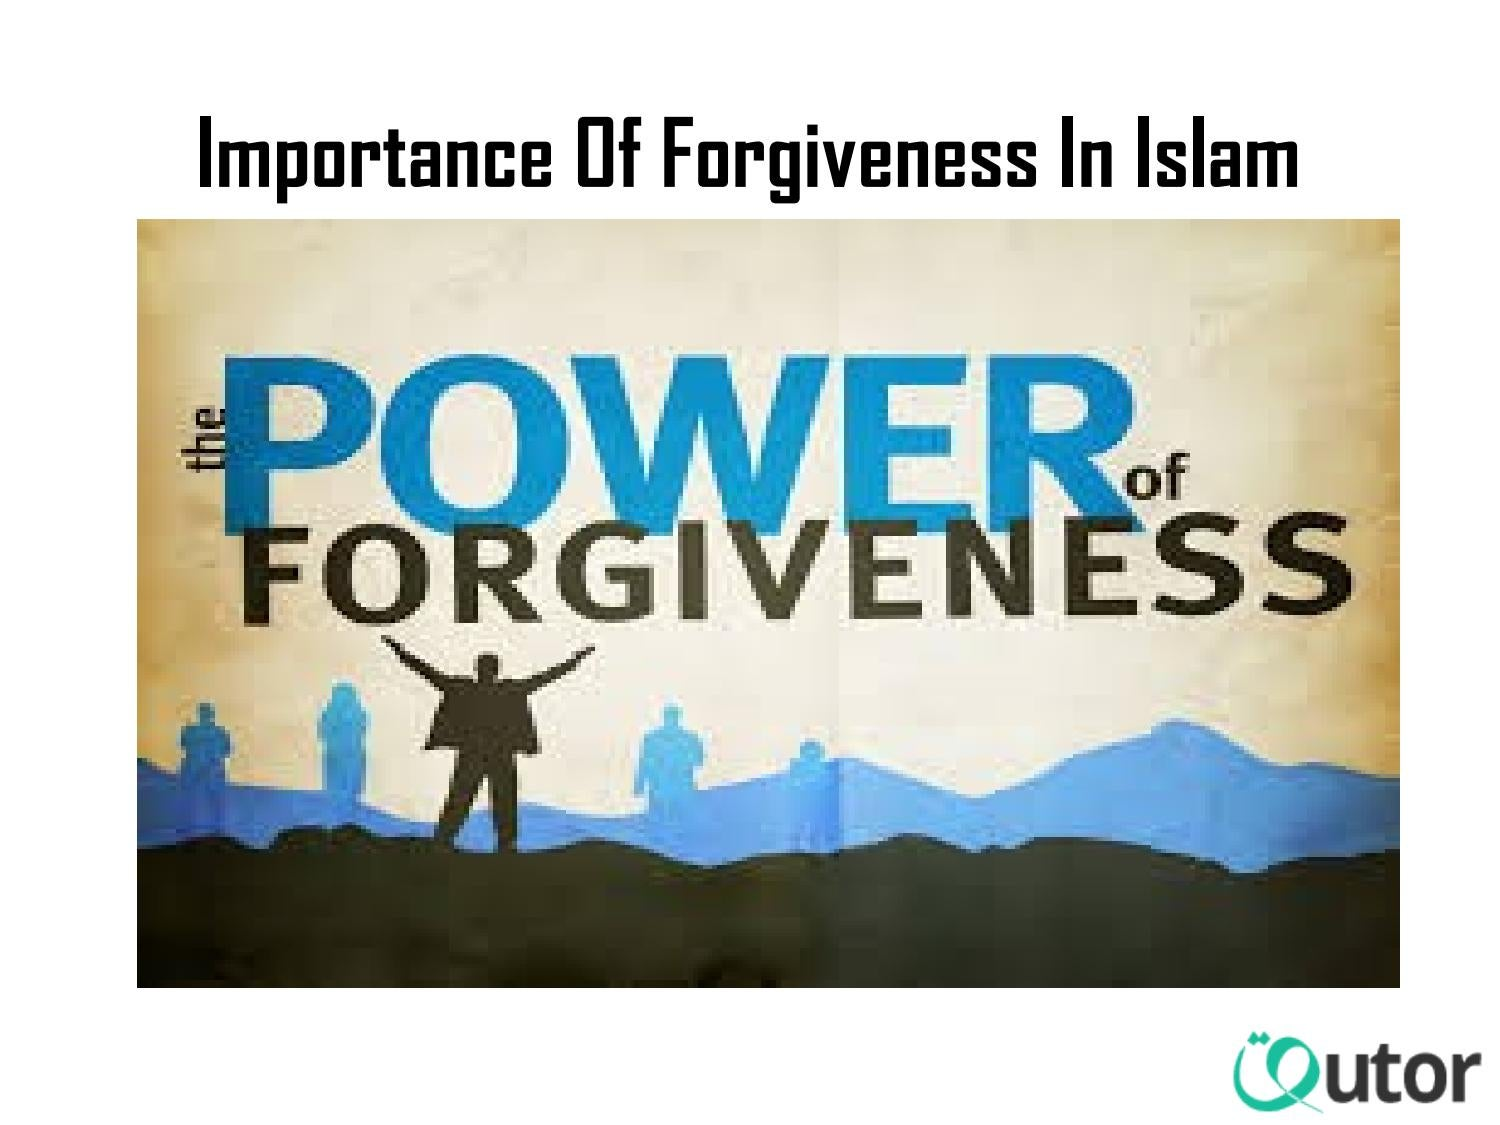 forgiveness in islam Forgiveness in the quran and sunnah forgiveness in islam hadith quran show forgiveness, enjoin what is good, and turn away from the ignorant.